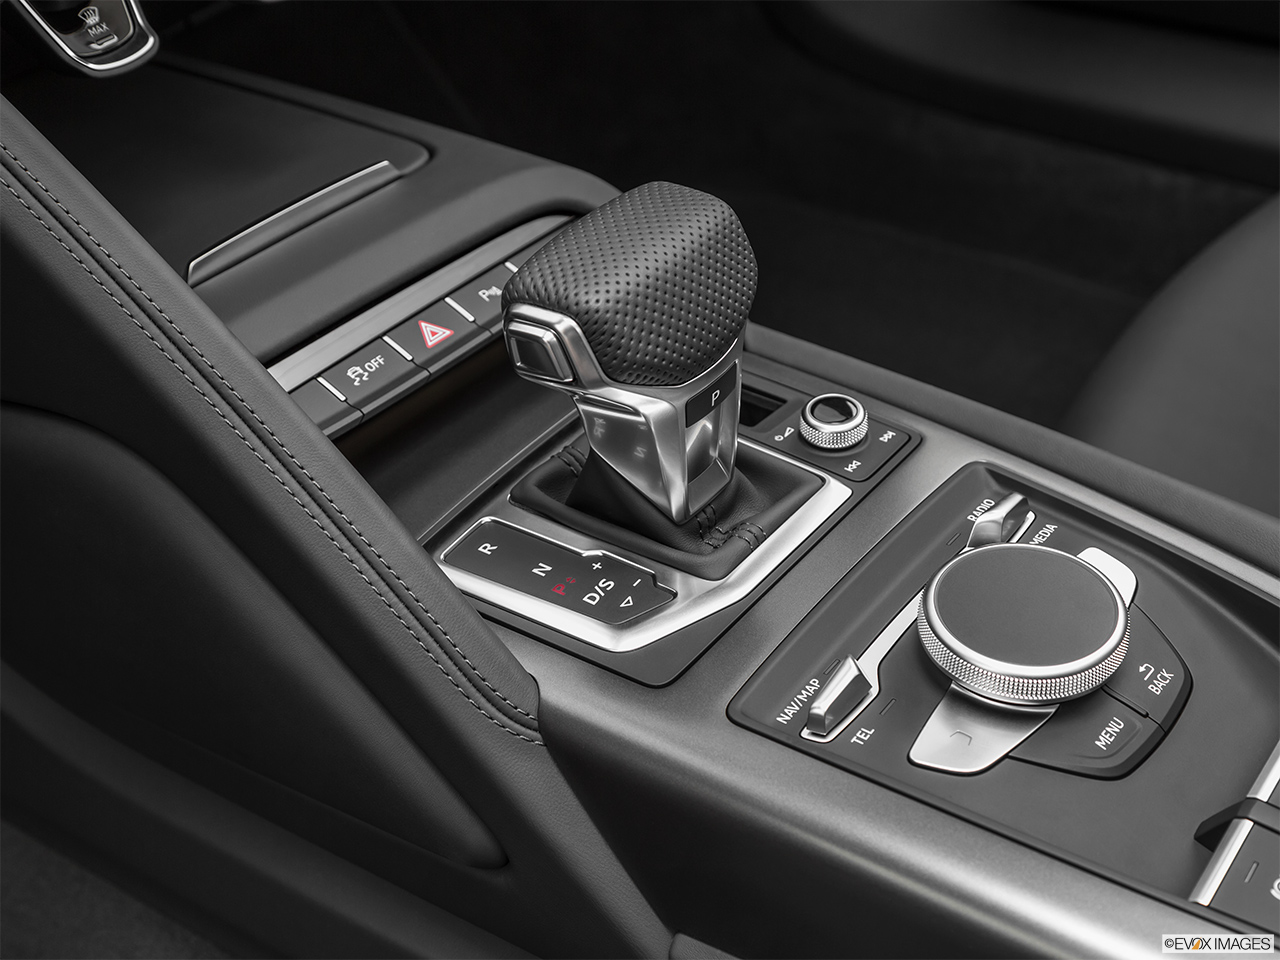 2020 Audi R8 Spyder V10 Gear shifter/center console.